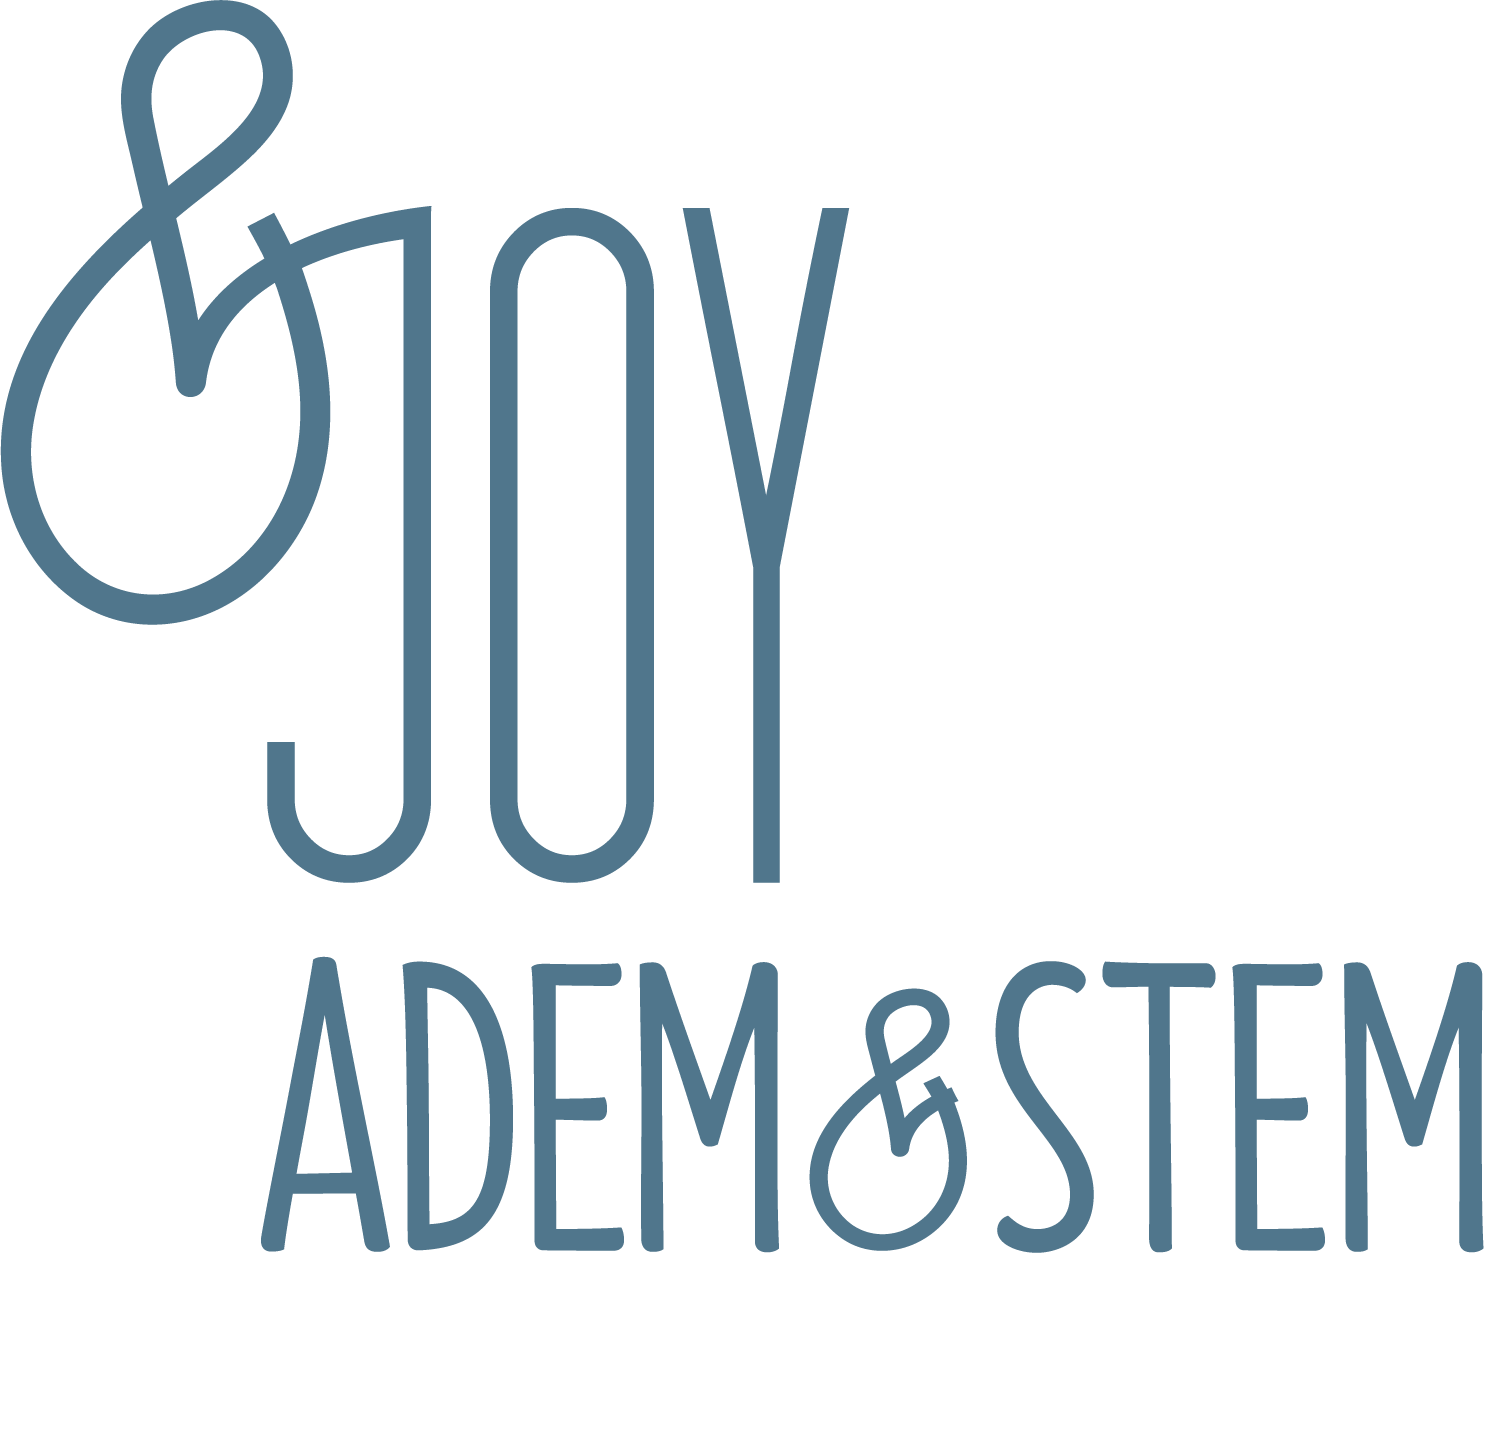 JOY titellogo ademstem web